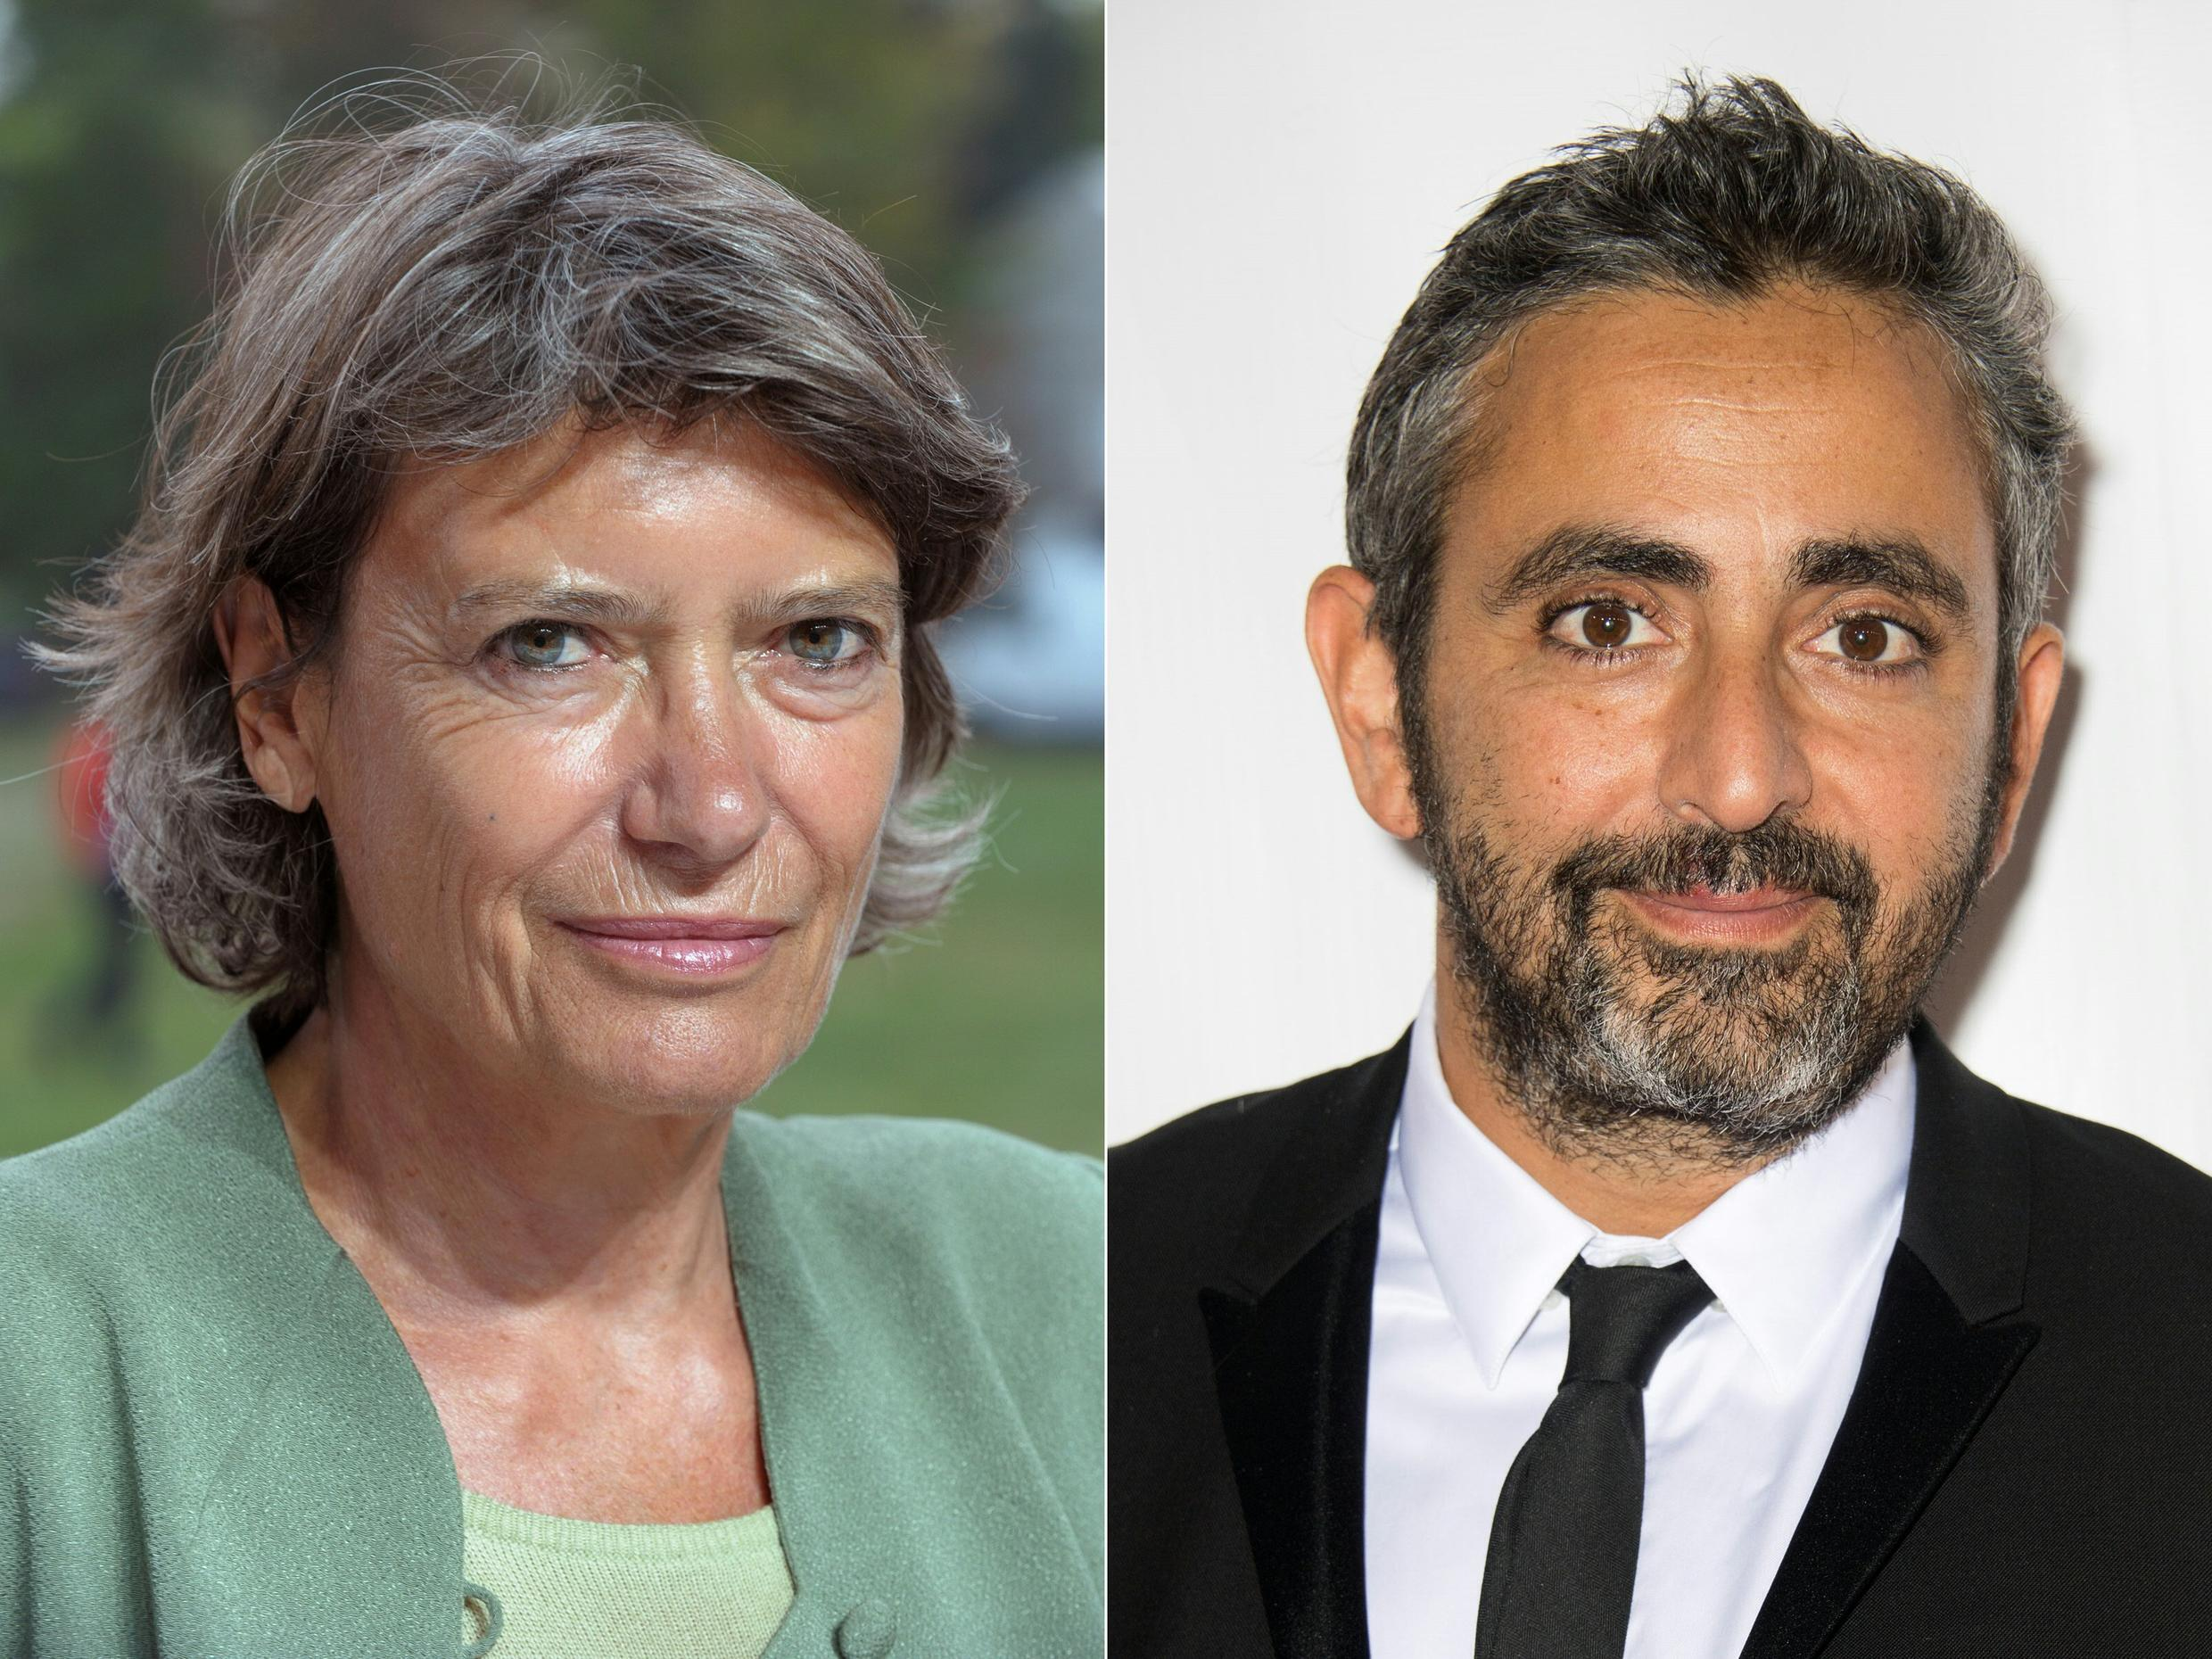 Véronique Cayla, the former president of French-German TV channel Arte (left) and French cinema director Éric Toledano (right) have been nominated to jointly head up the prestigious French César Academy, which each year awards the most prestigious French cinema prizes.